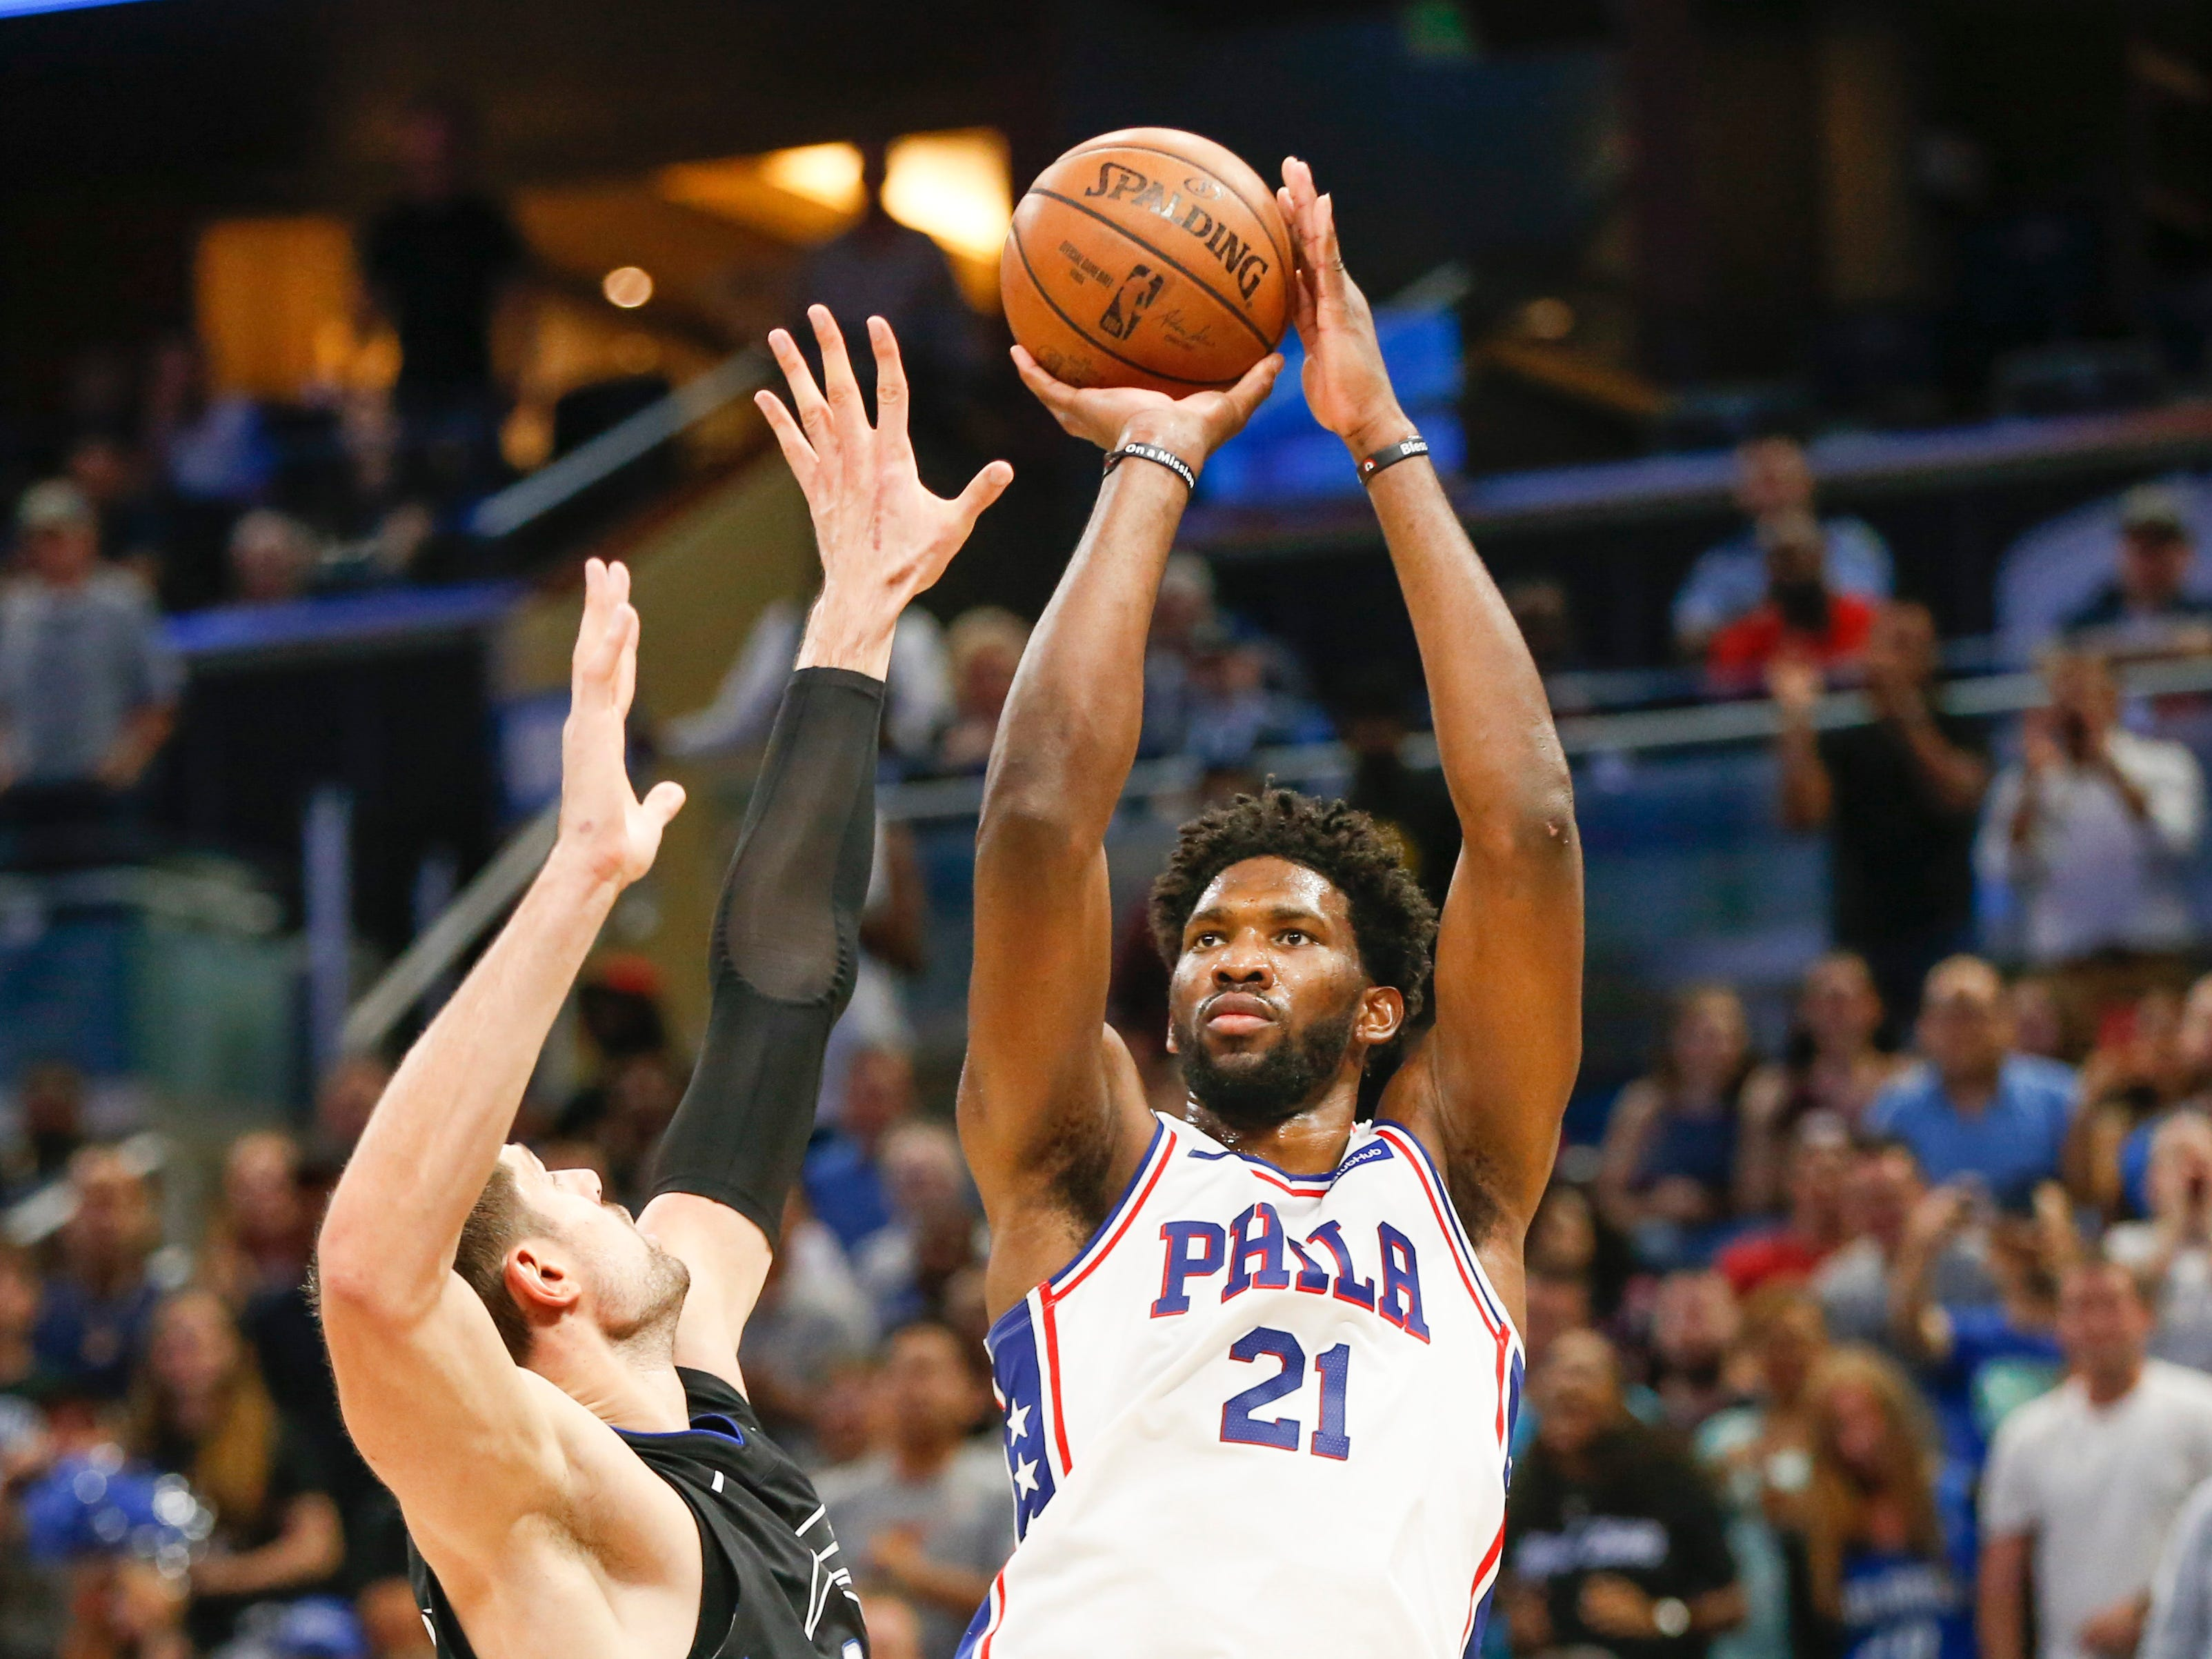 11. Joel Embiid, 76ers (Nov. 14): 19 points, 13 rebounds and 10 assists in 111-106 loss to Magic.